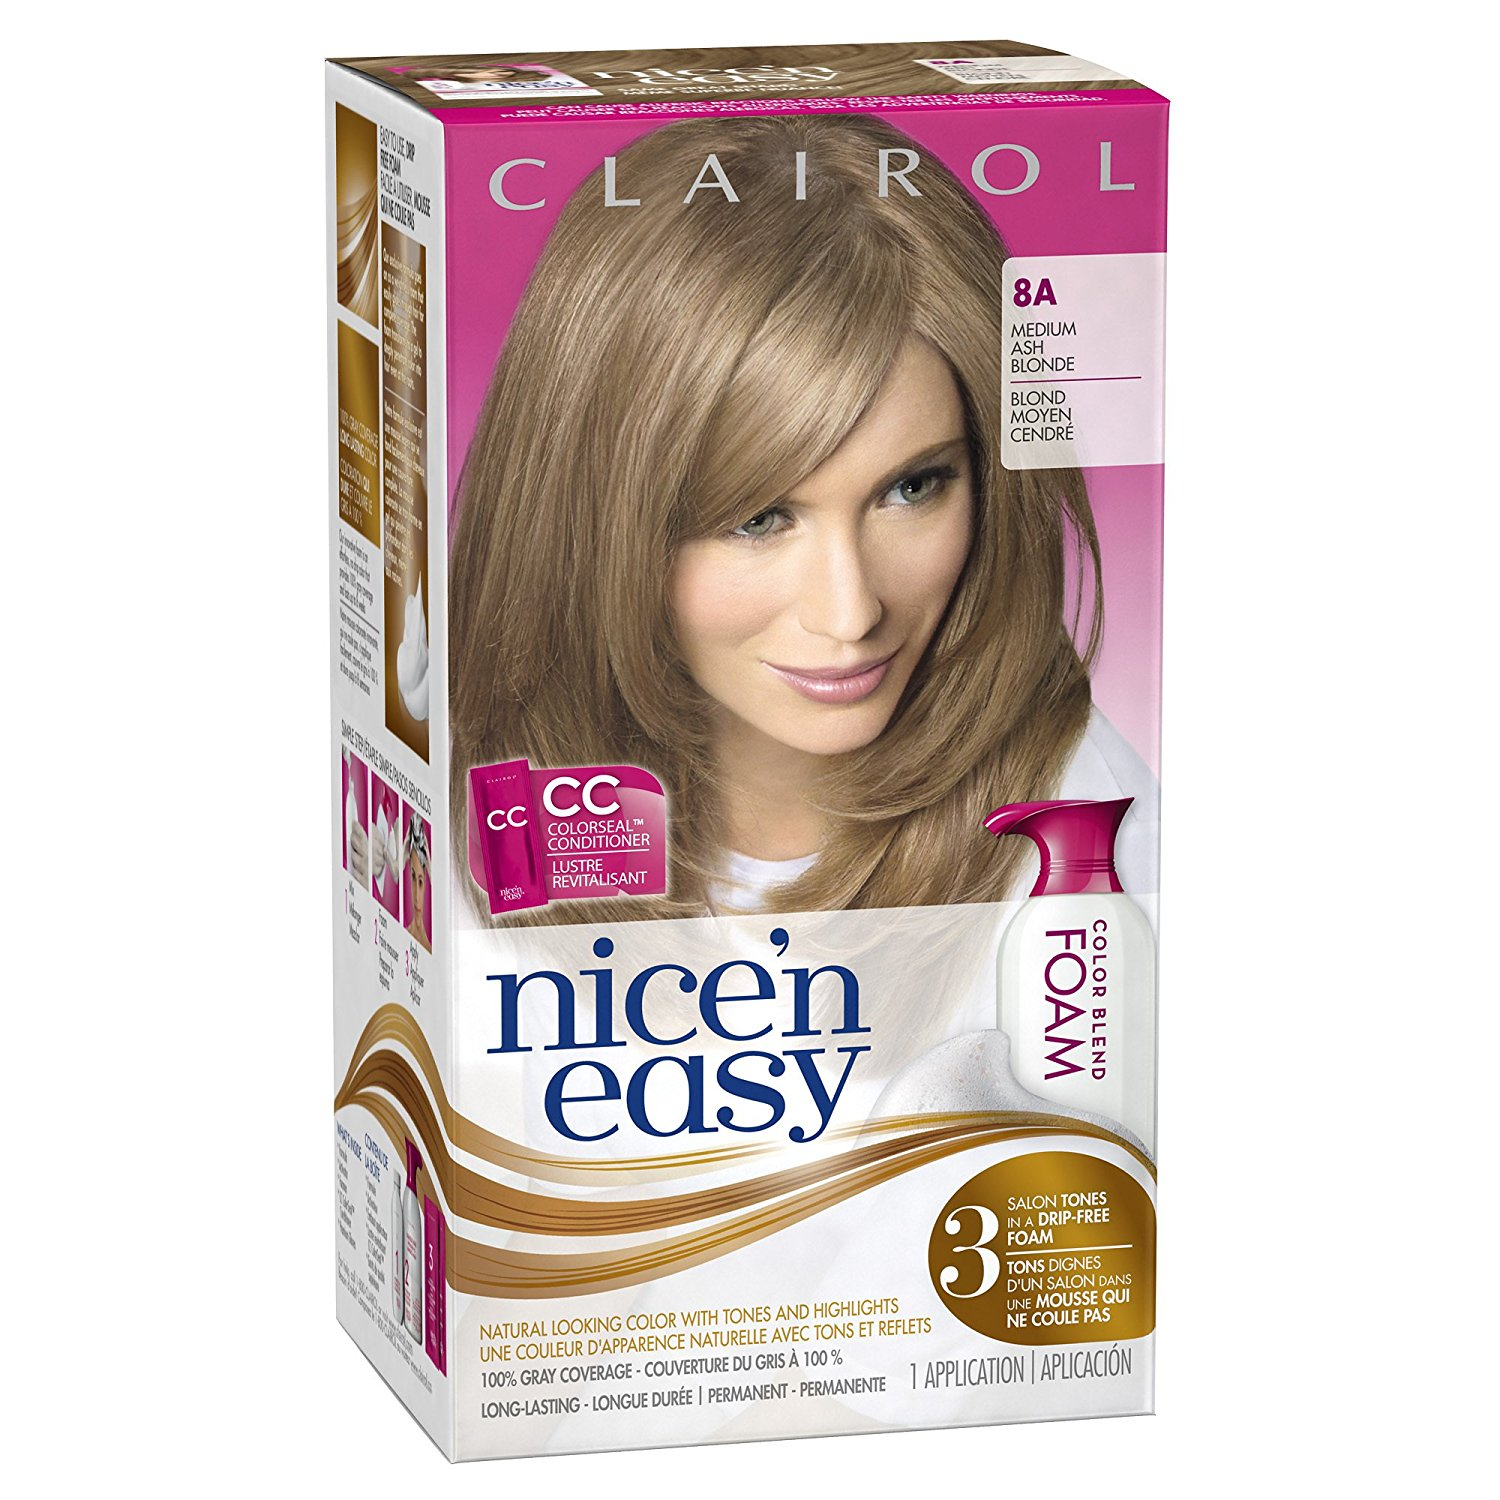 Cheap Clairol Foam Hair Color Find Clairol Foam Hair Color Deals On